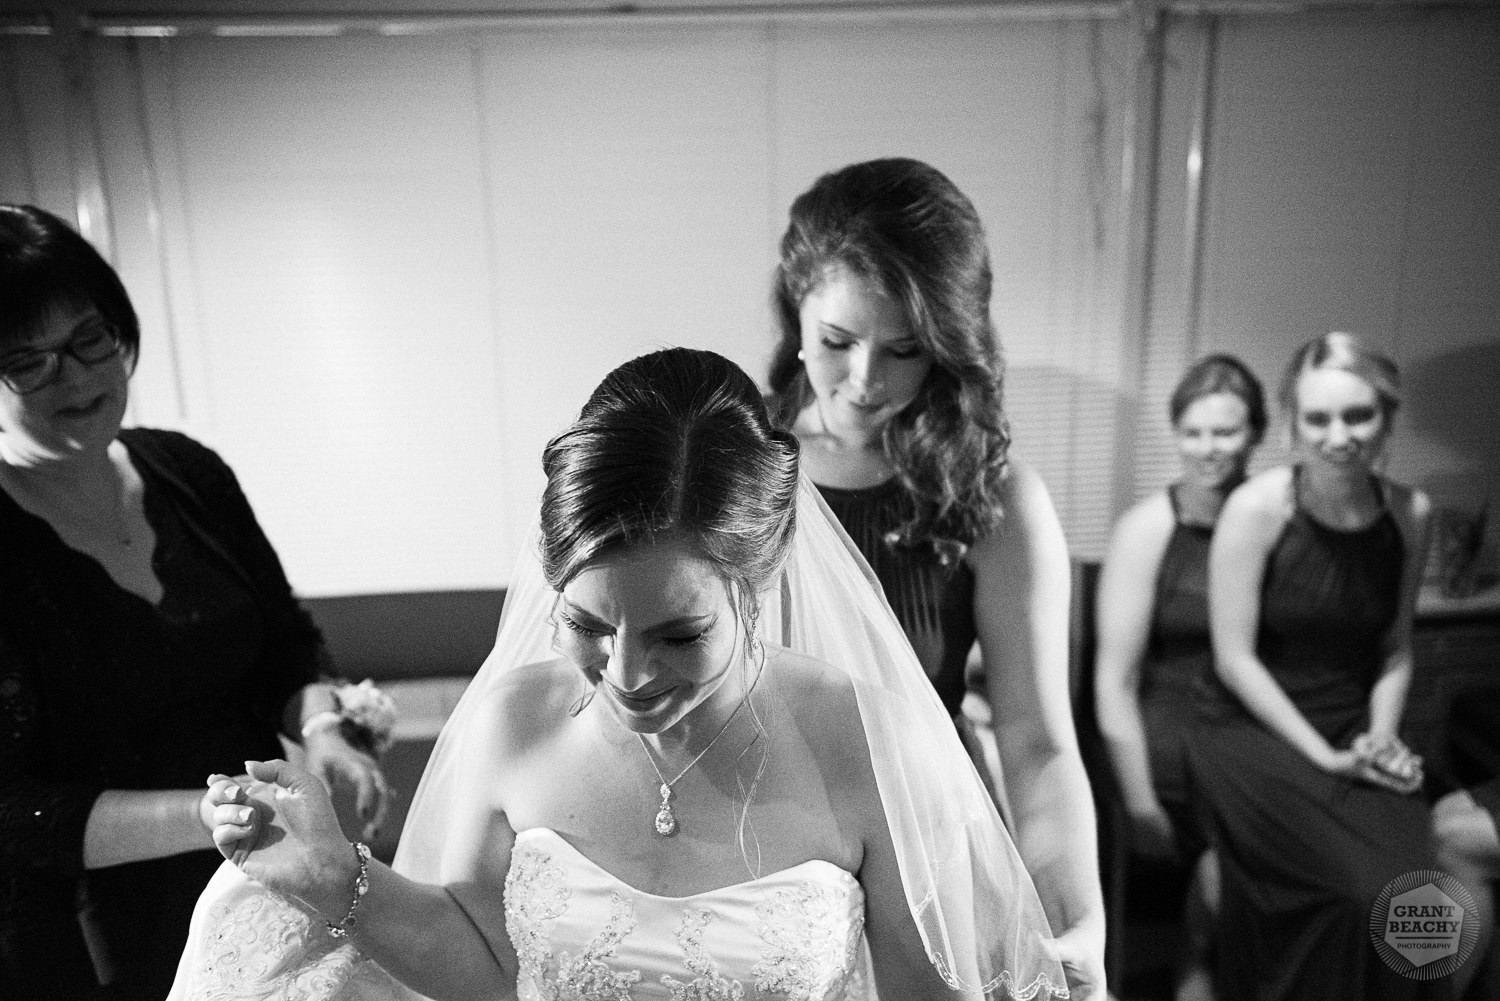 Grant Beachy wedding photographer, south bend, elkhart, chicago-8.jpg